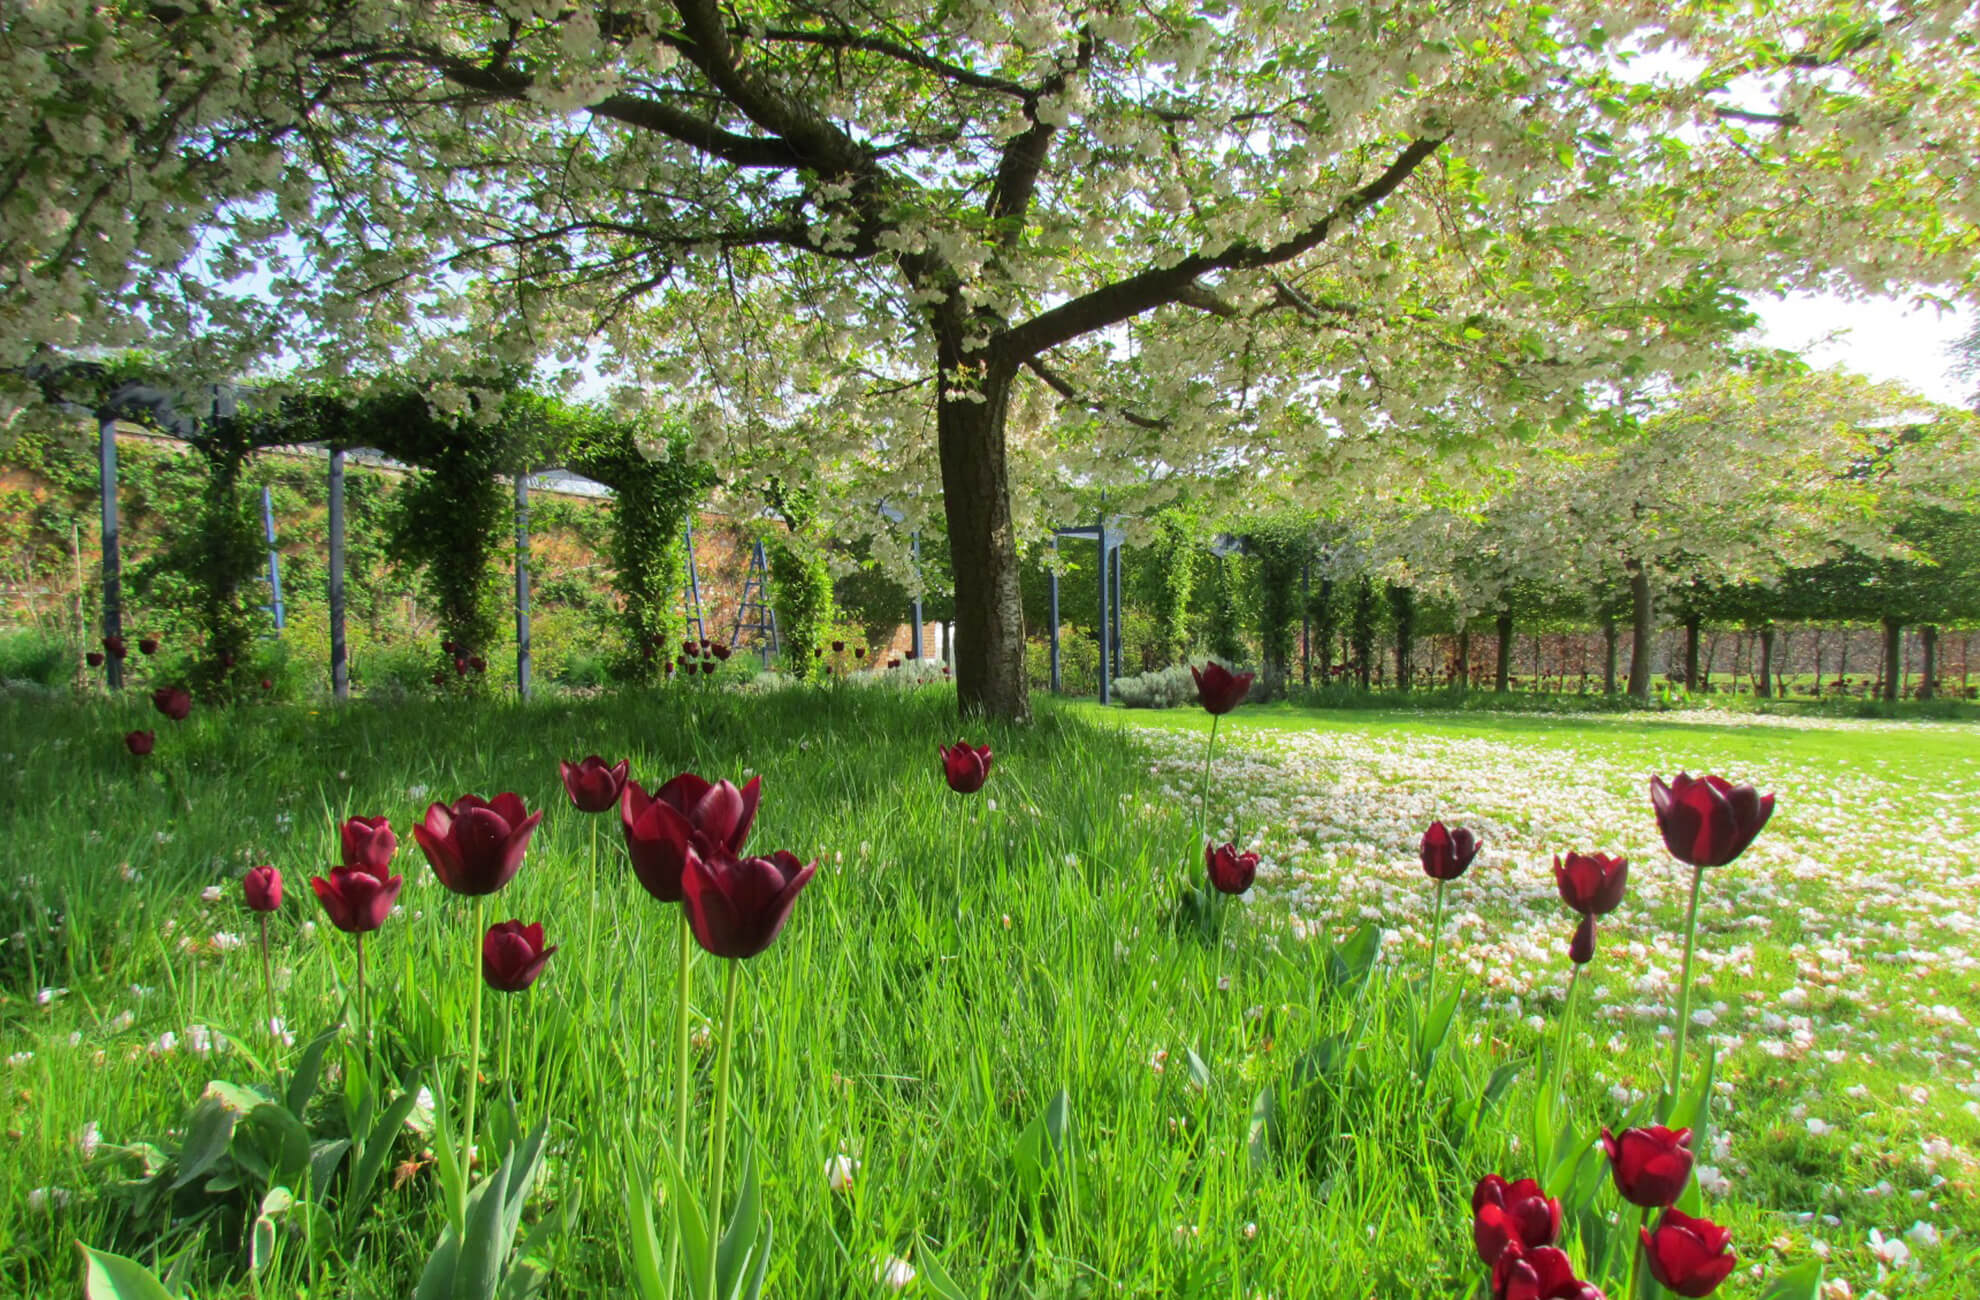 Tulips and cherry trees look beautiful in the walled gardens at Combermere Abbey